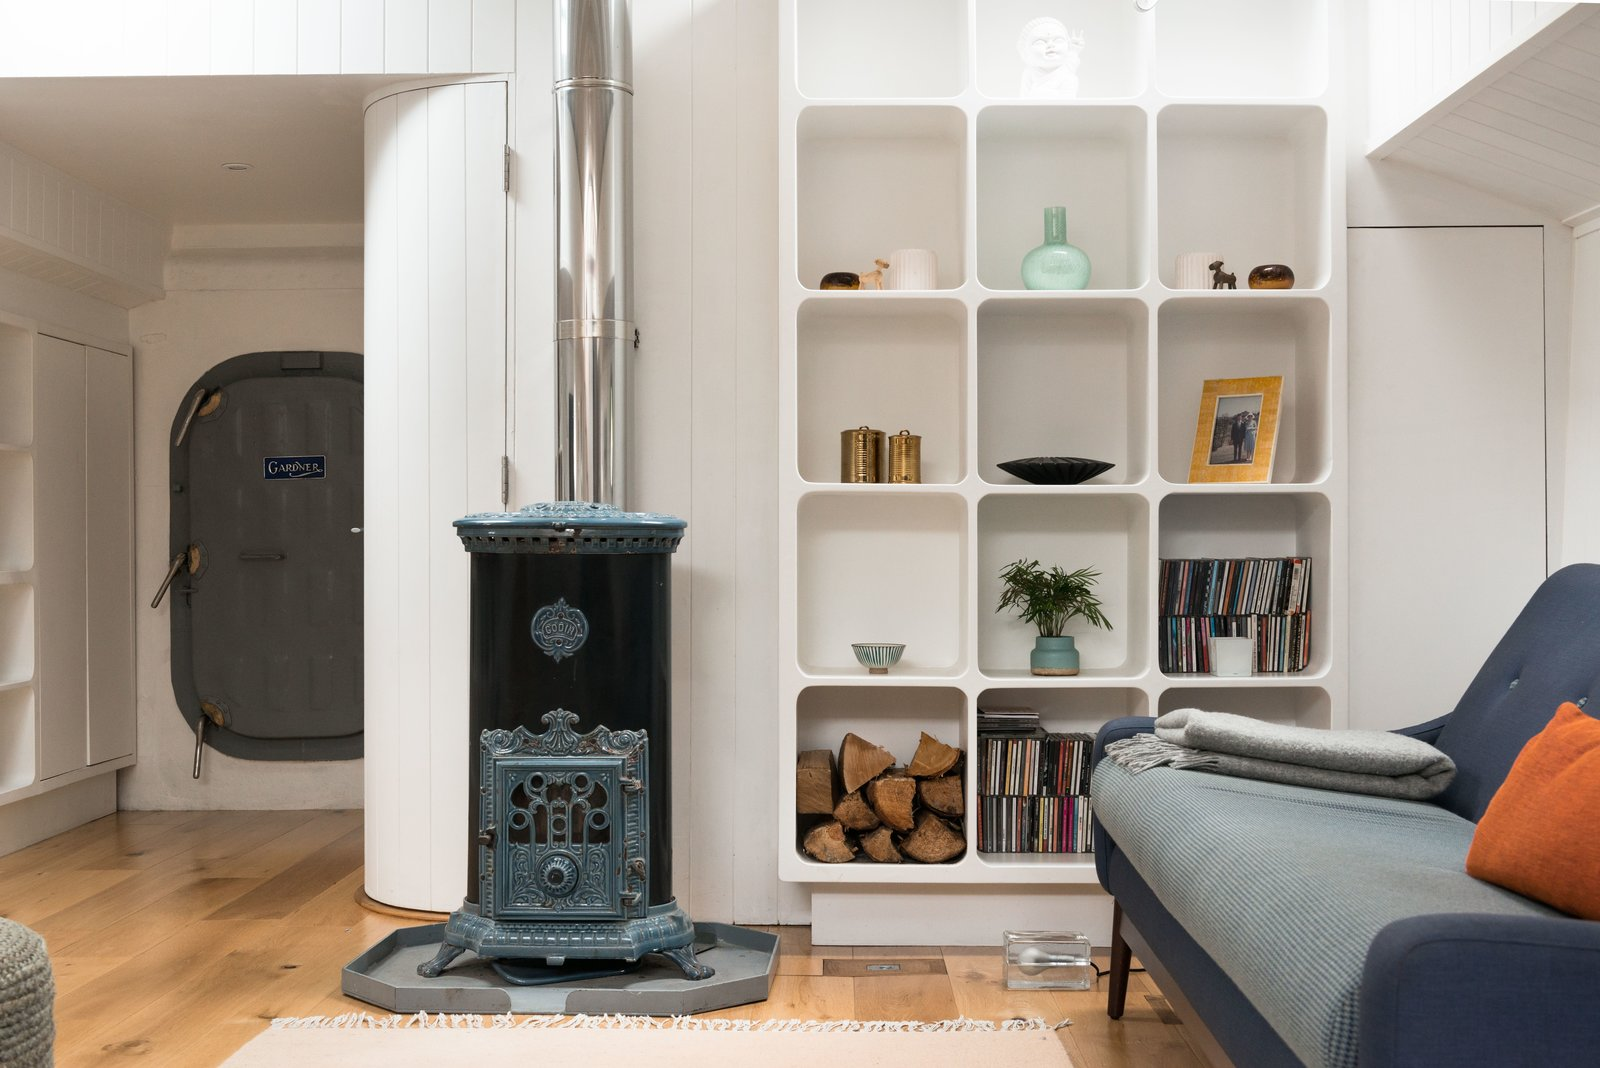 Living Room, Light Hardwood Floor, Shelves, Wood Burning Fireplace, and Sofa An original 1920's restored Goodin Woodburning Stove anchors the cozy living space.  Photo 5 of 9 in Londoners Can Live in This Scandinavian-Inspired, Converted Barge For $424K